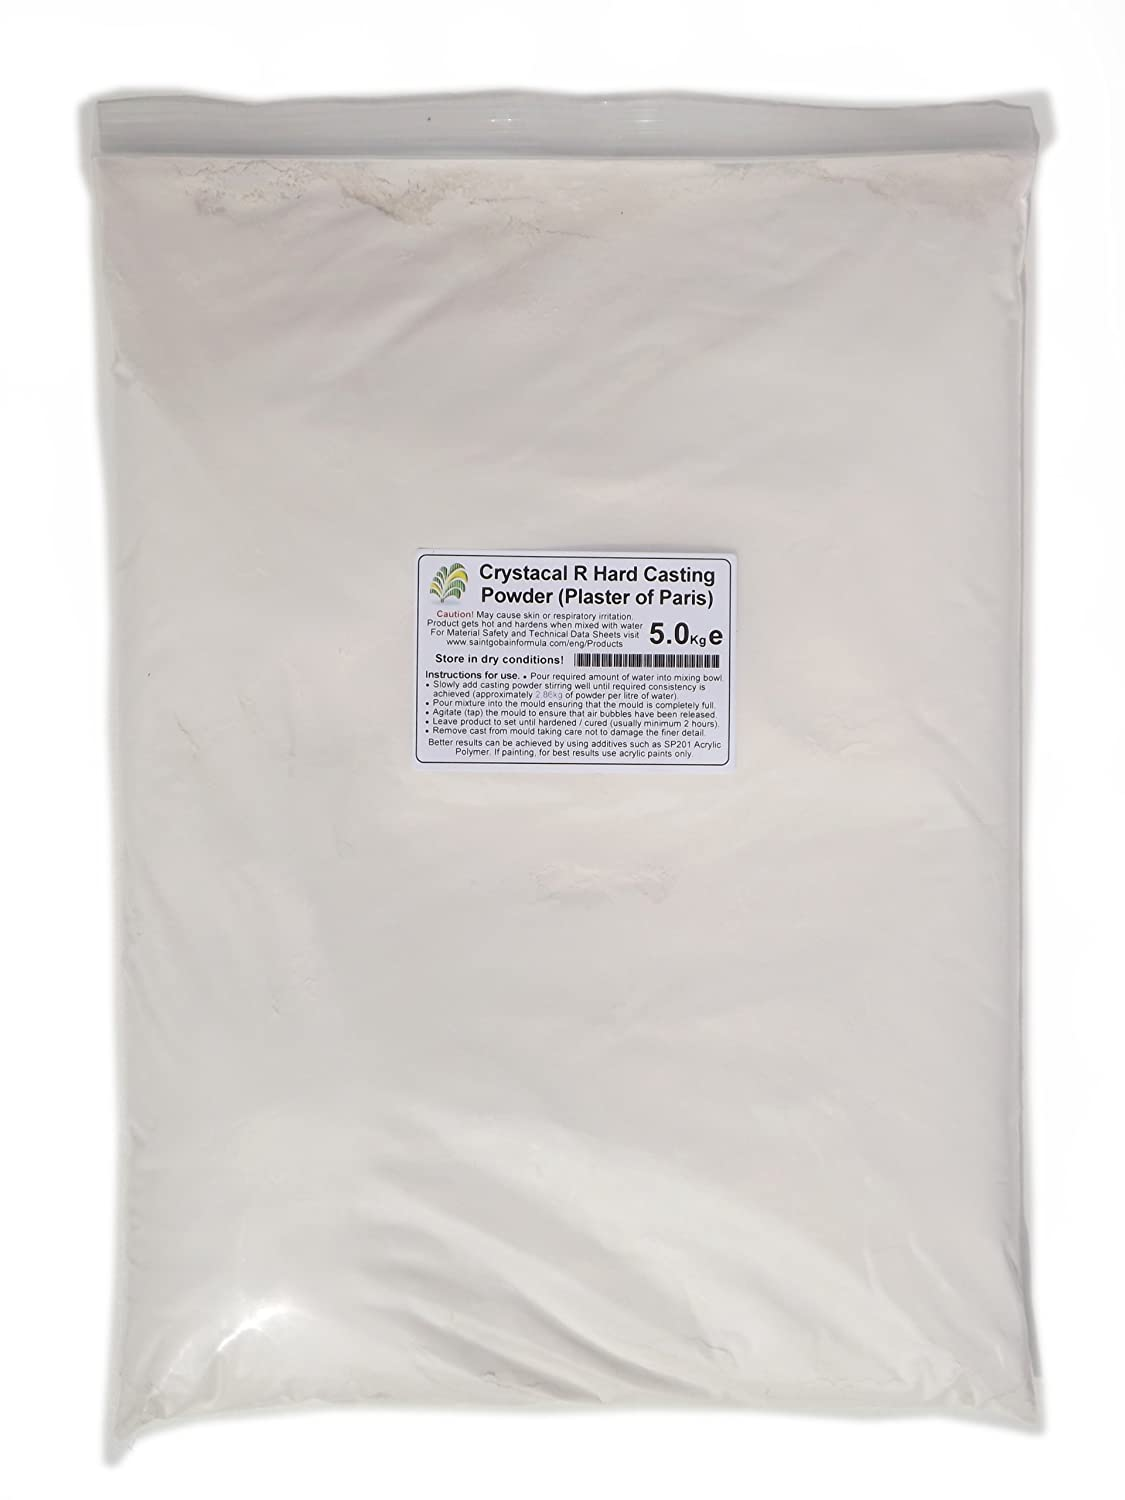 10kg Crystacal R - Plaster of Paris Saint Gobain